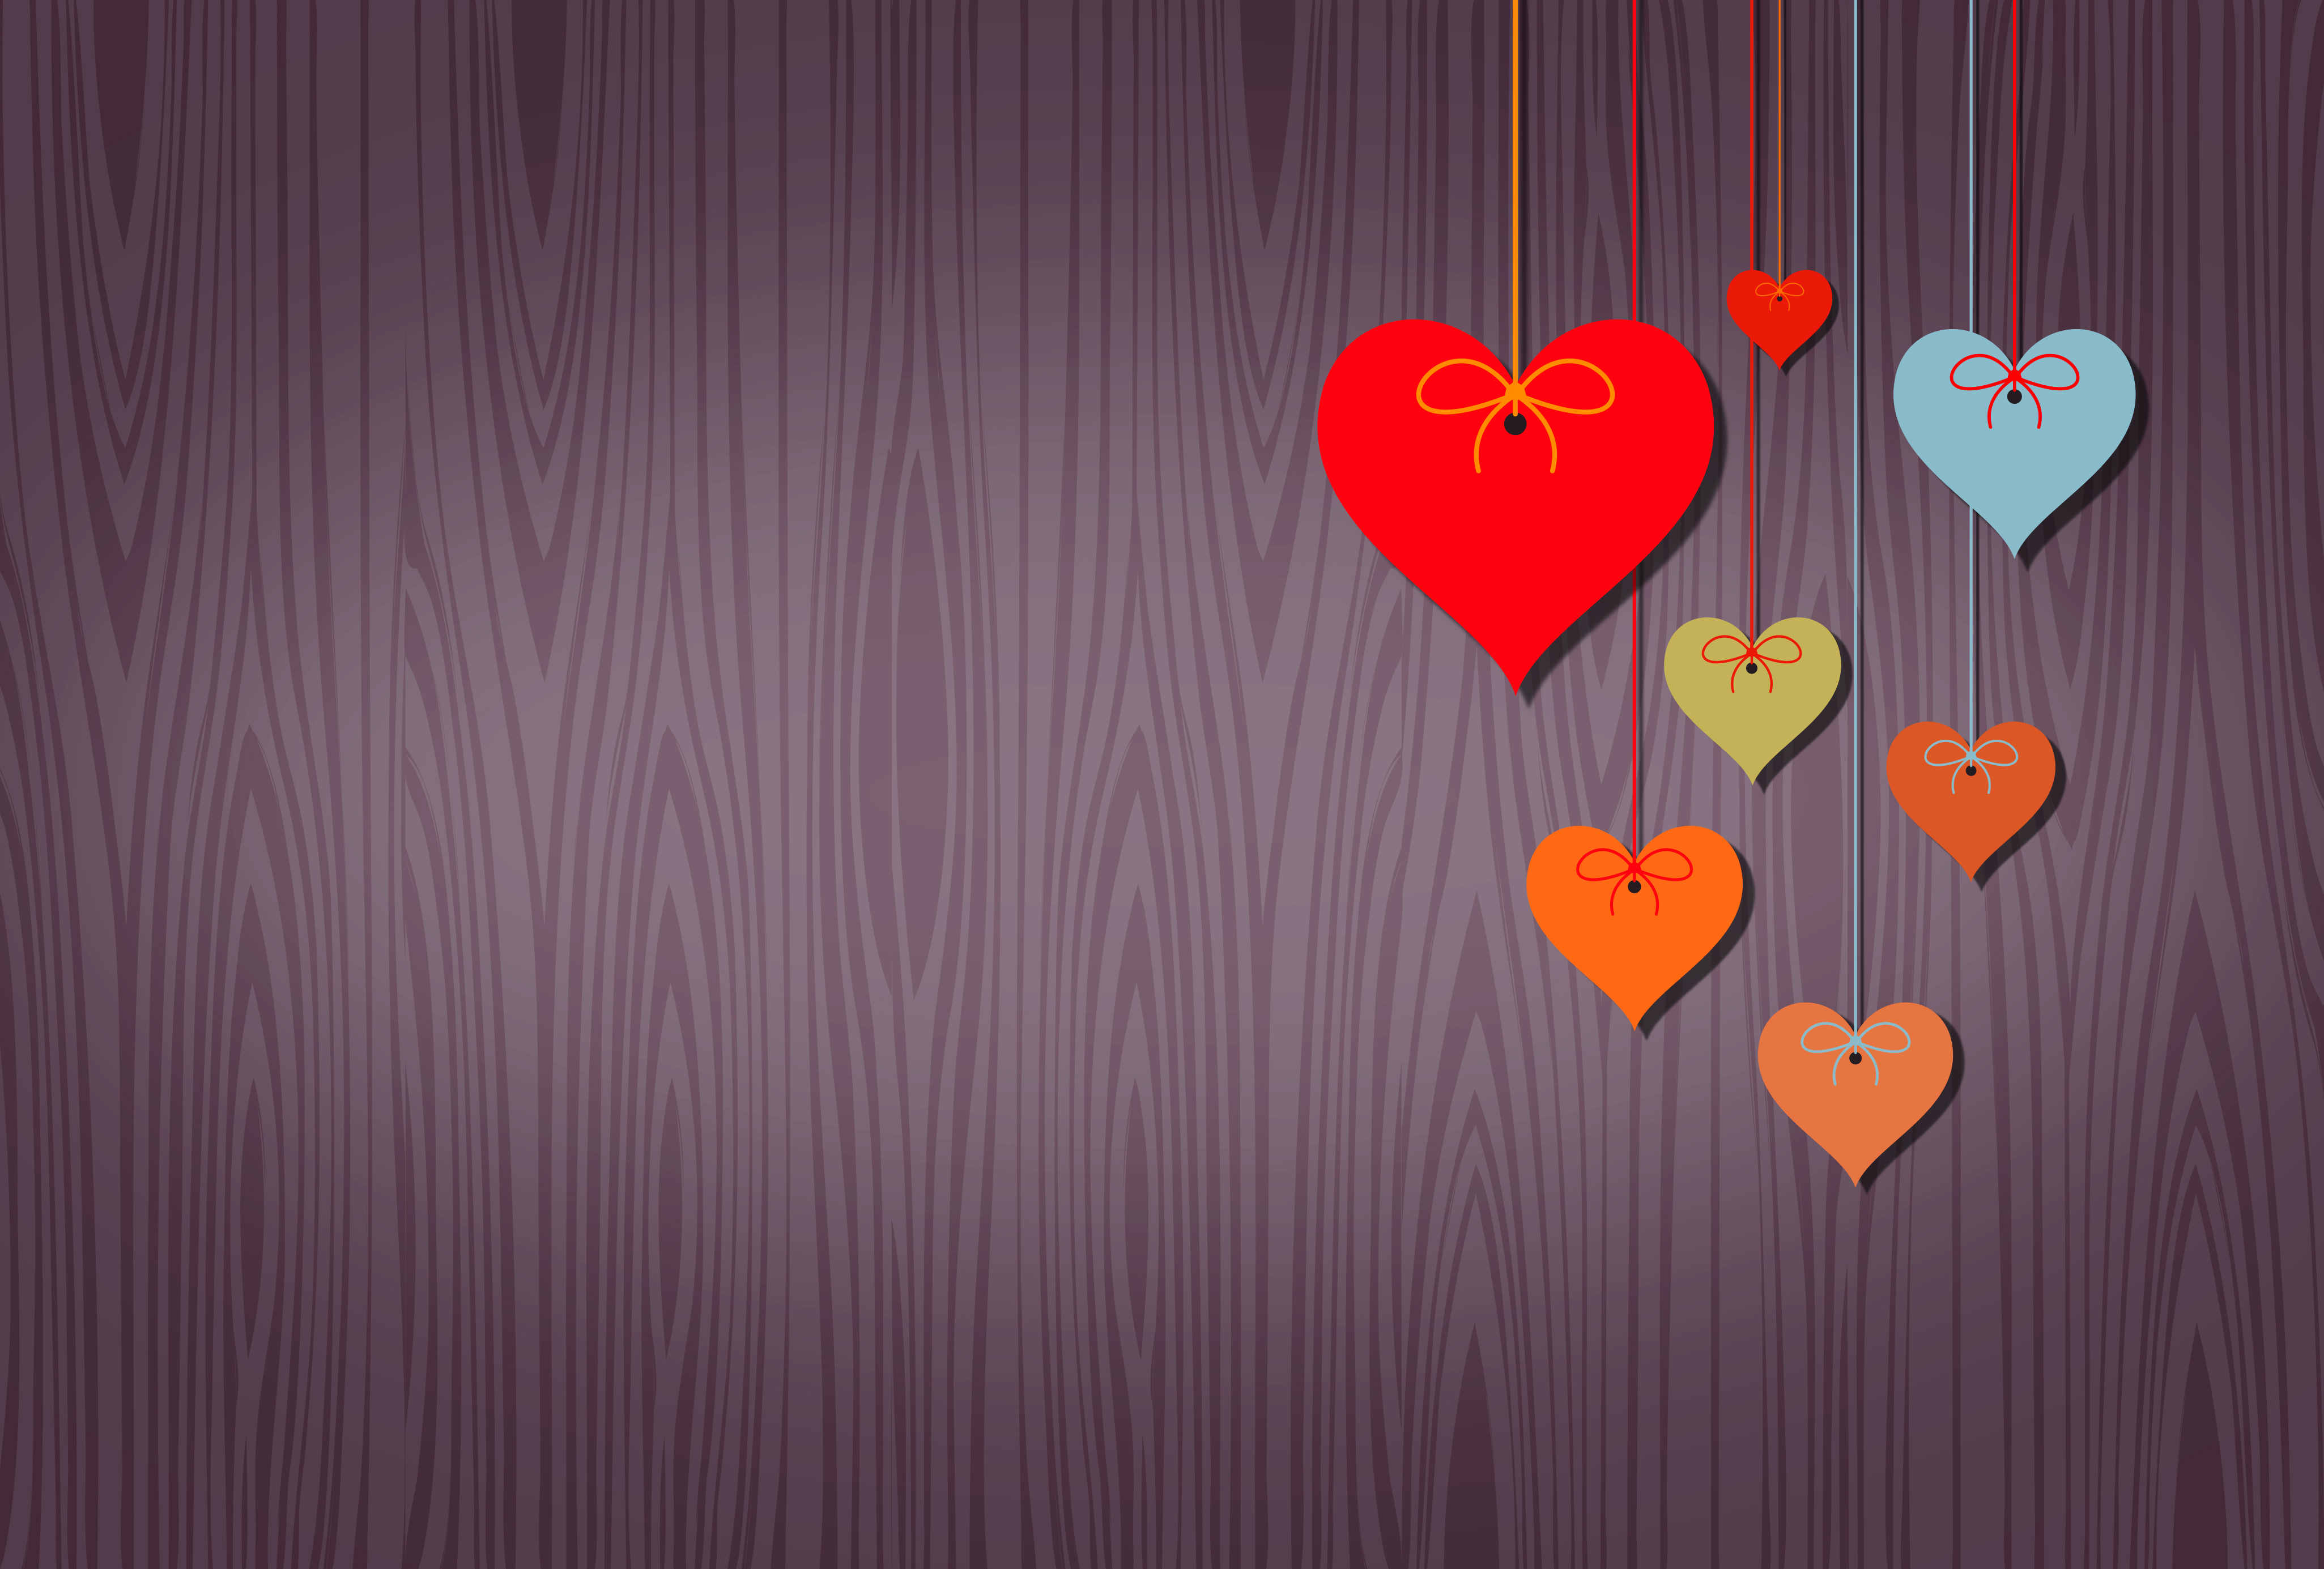 Hearts Background with Copyspace, Red, Purple, Present, Romance, HQ Photo